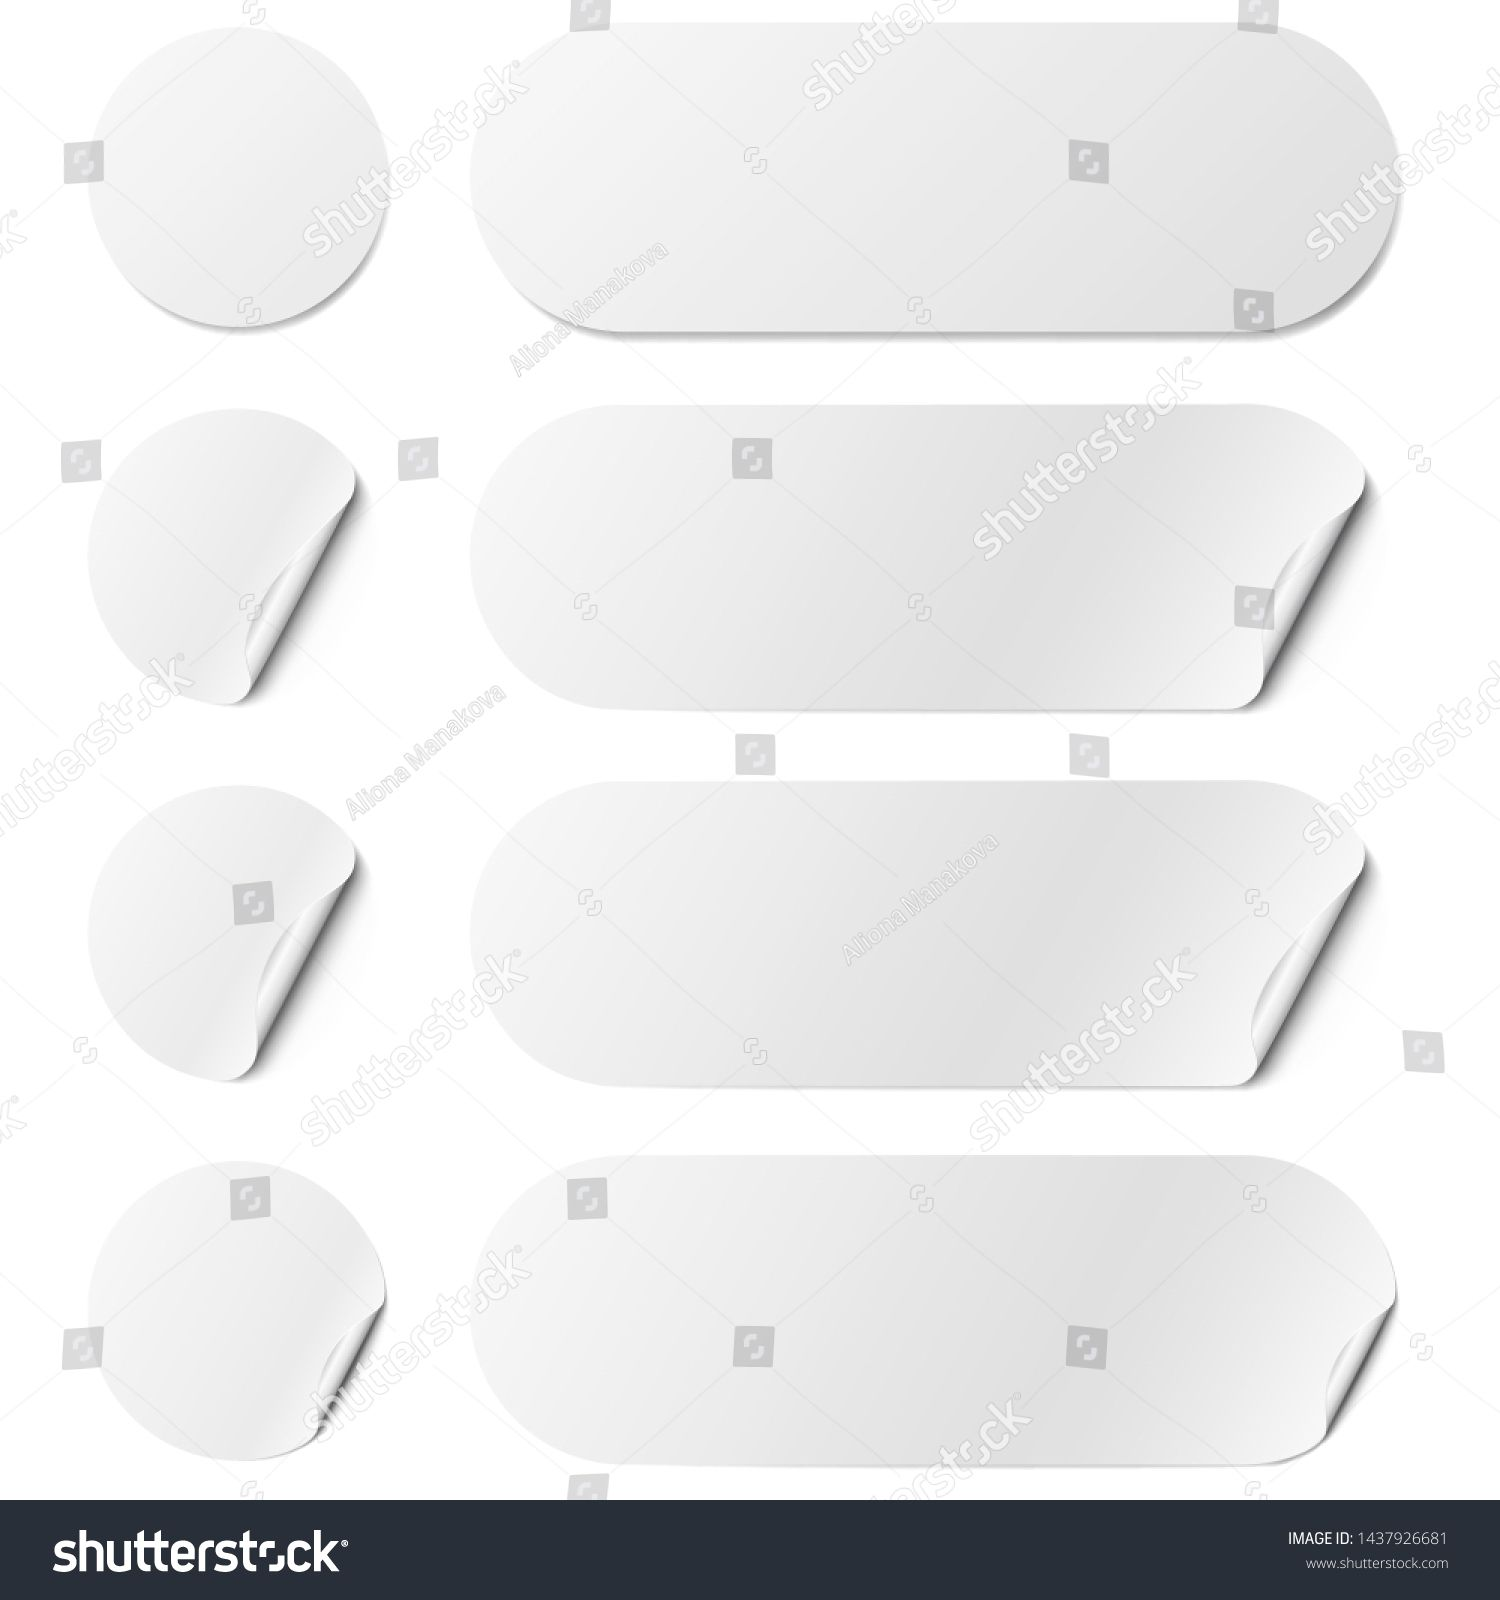 Set of white round and oval adhesive stickers with a folded edges isolated on white background